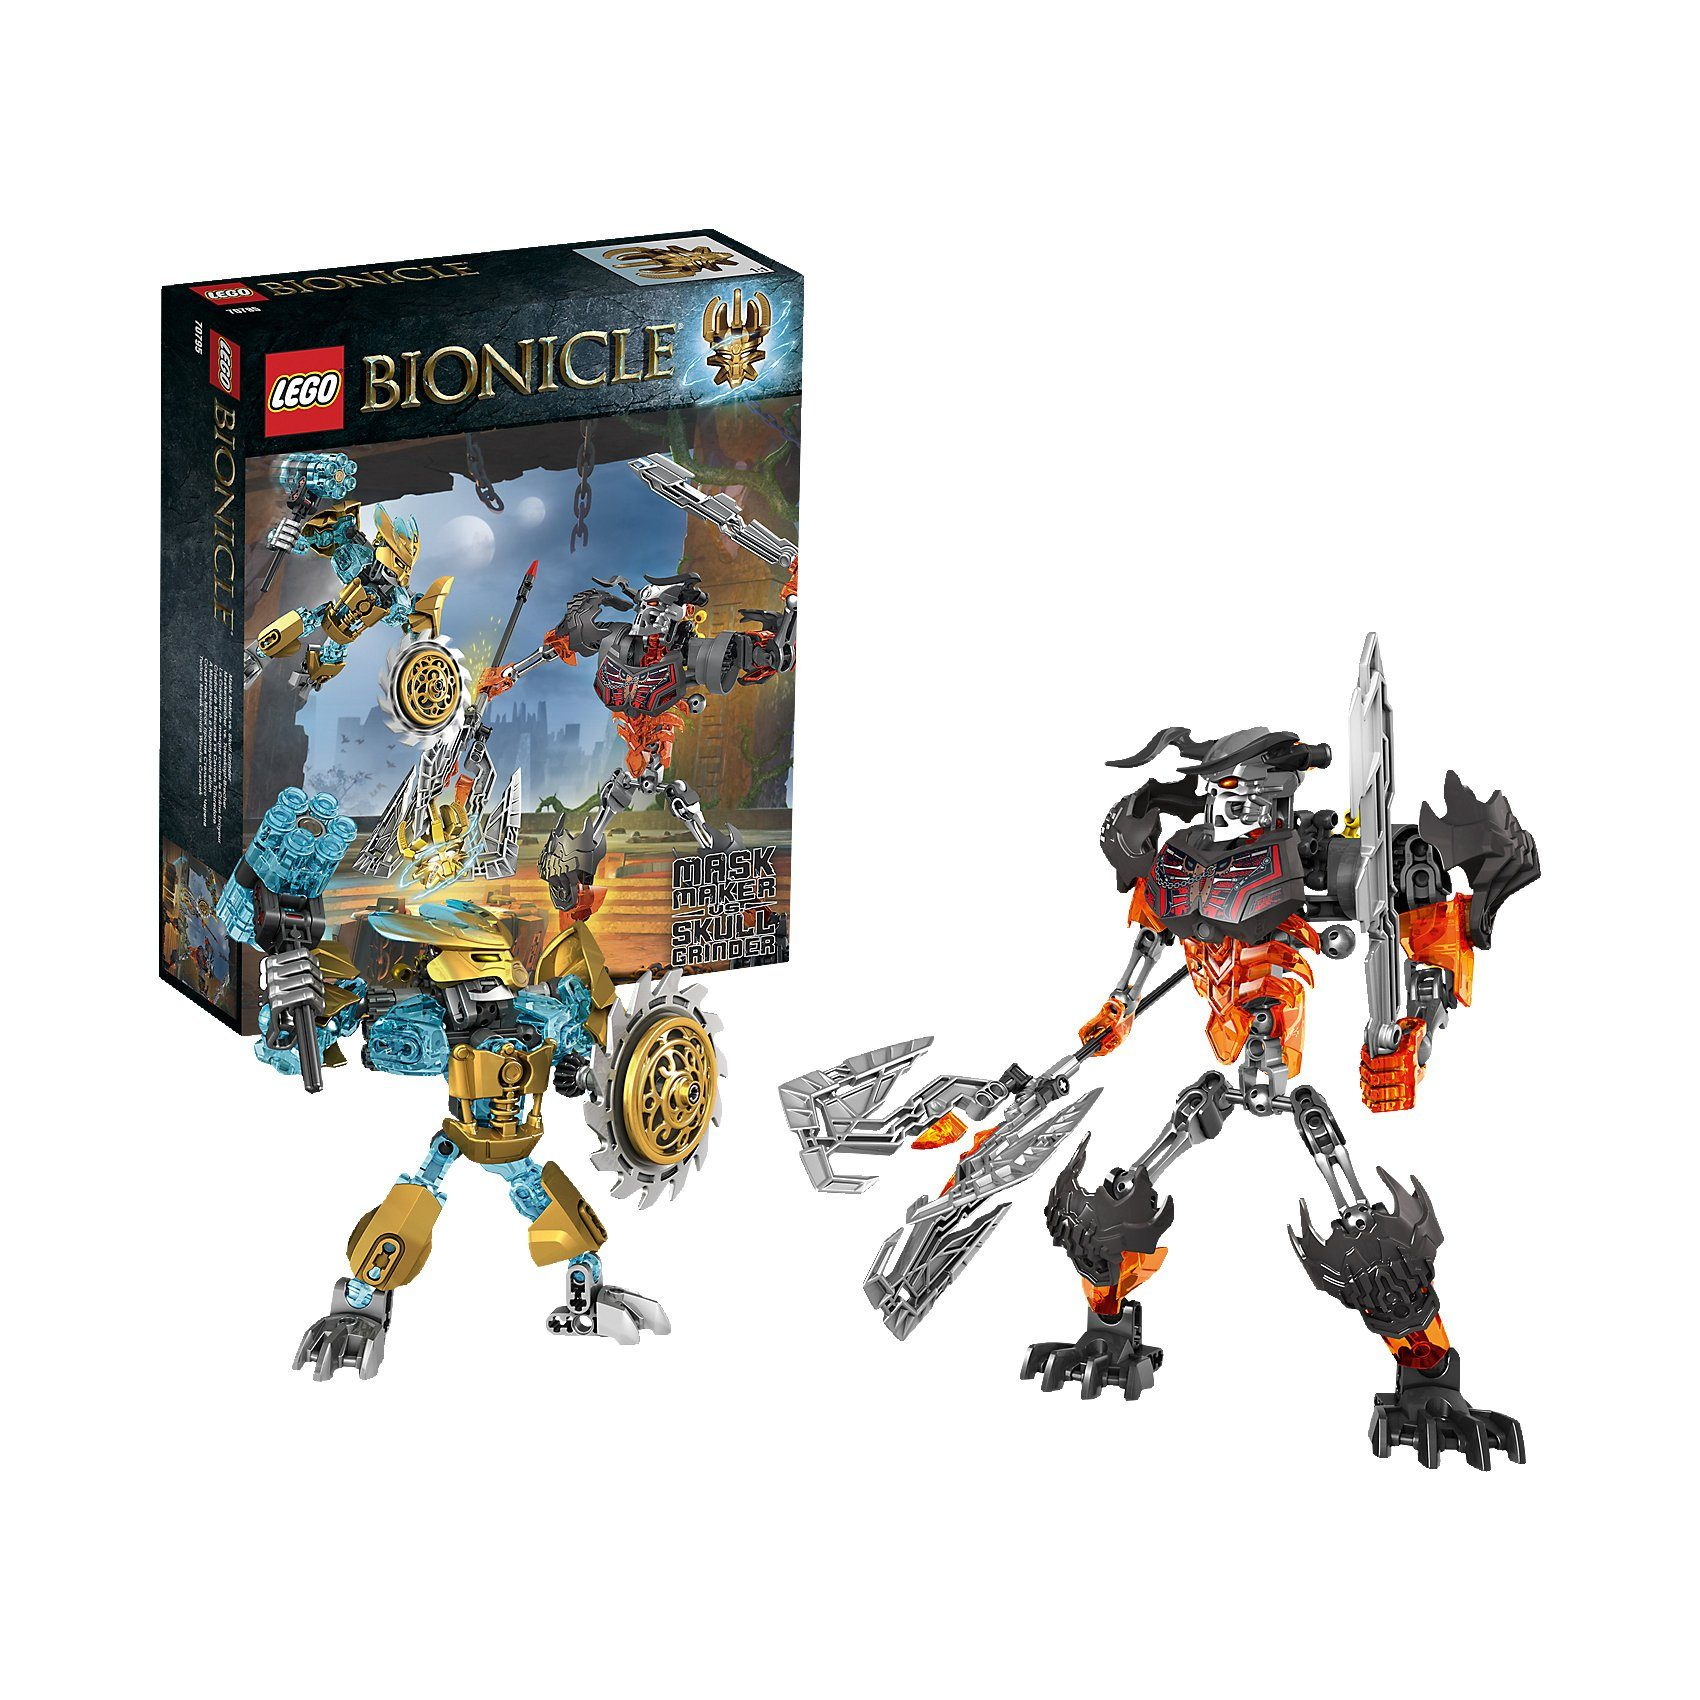 LEGO 70795 Bionicle: Maskenmacher vs. Totenkopf-Brecher